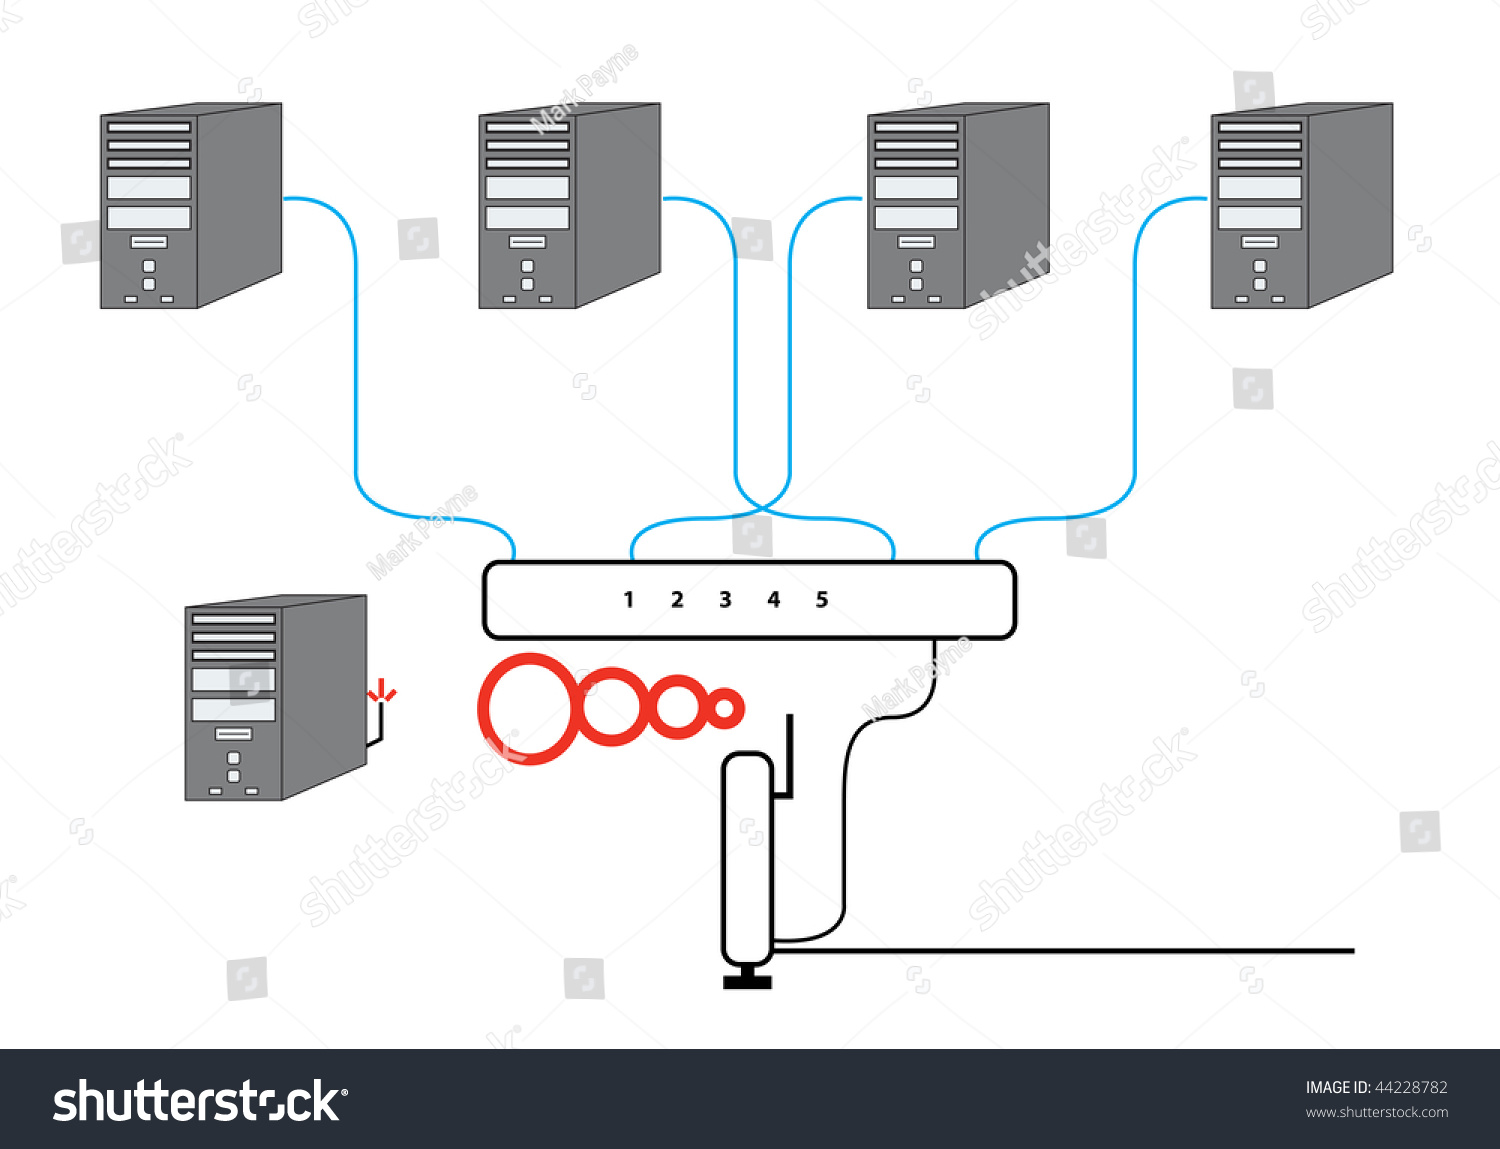 Computer Network Diagram Five P Cs Switch Stock Vector 44228782 ...